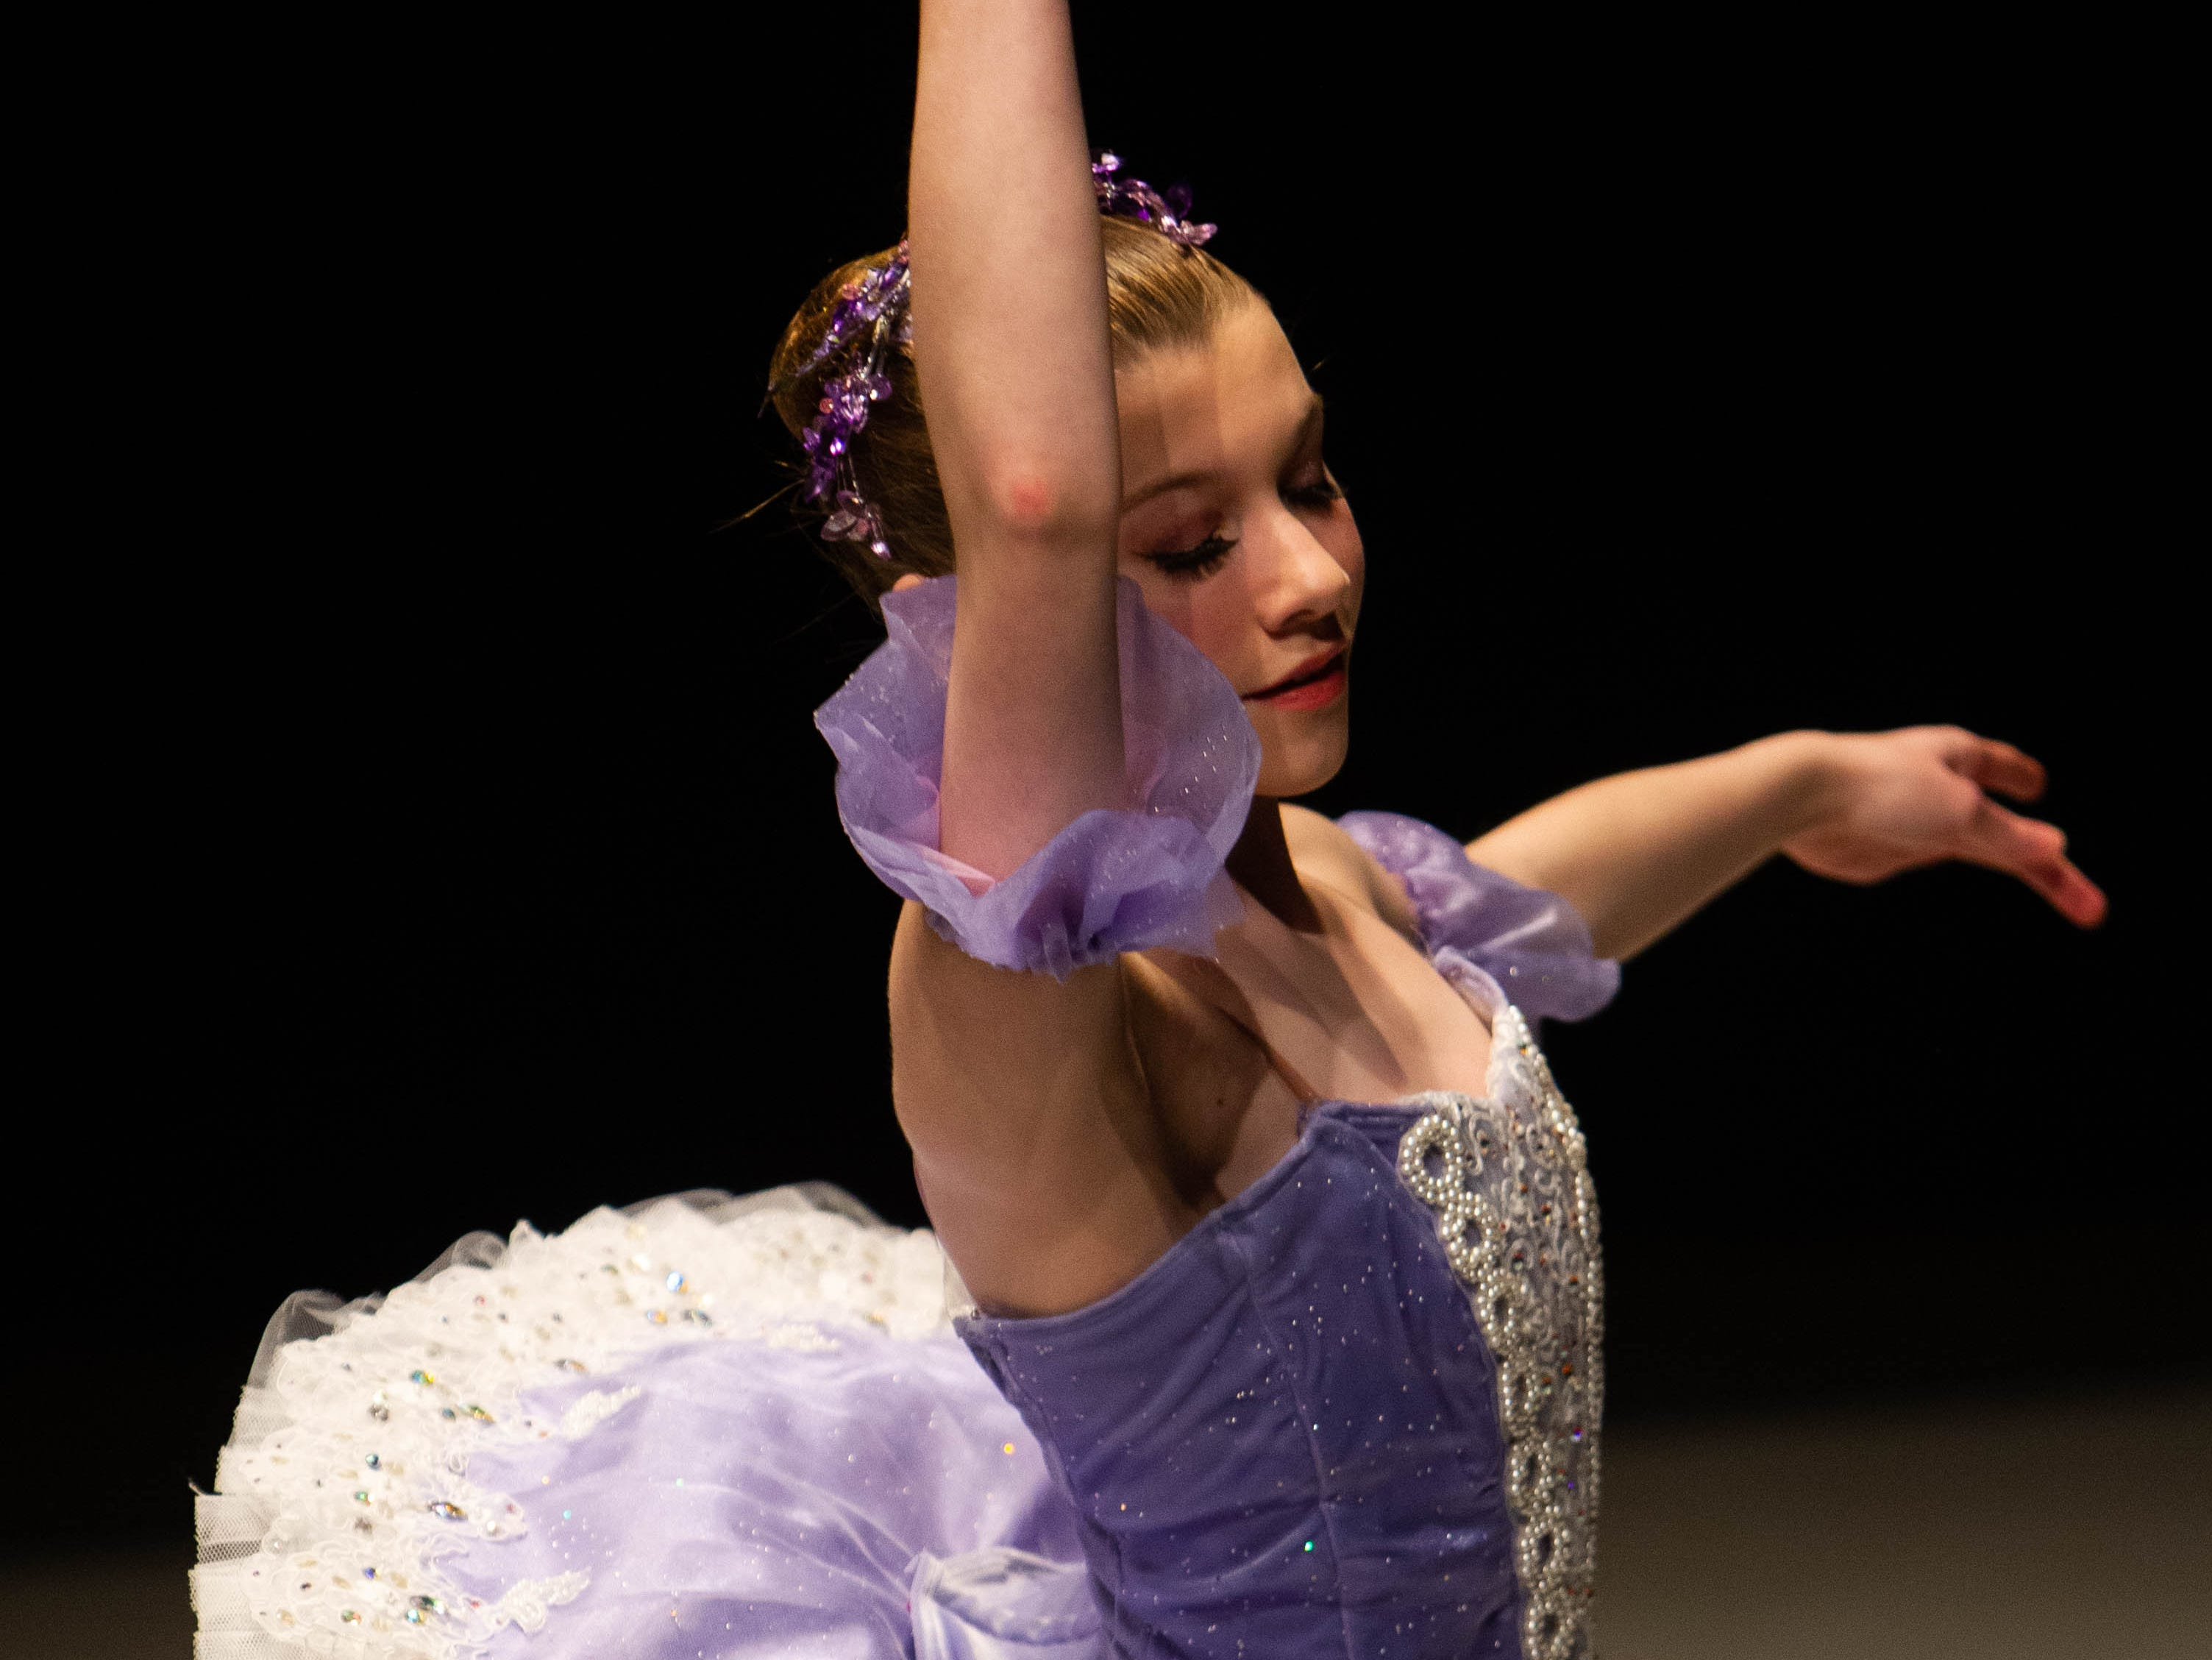 Lilli Orr competes at the inaugural year of Grand Jeté dance competition in the Junior Ballet division, at the South Carolina Governor's School for the Arts and Humanities, on Saturday, March 2, 2019.